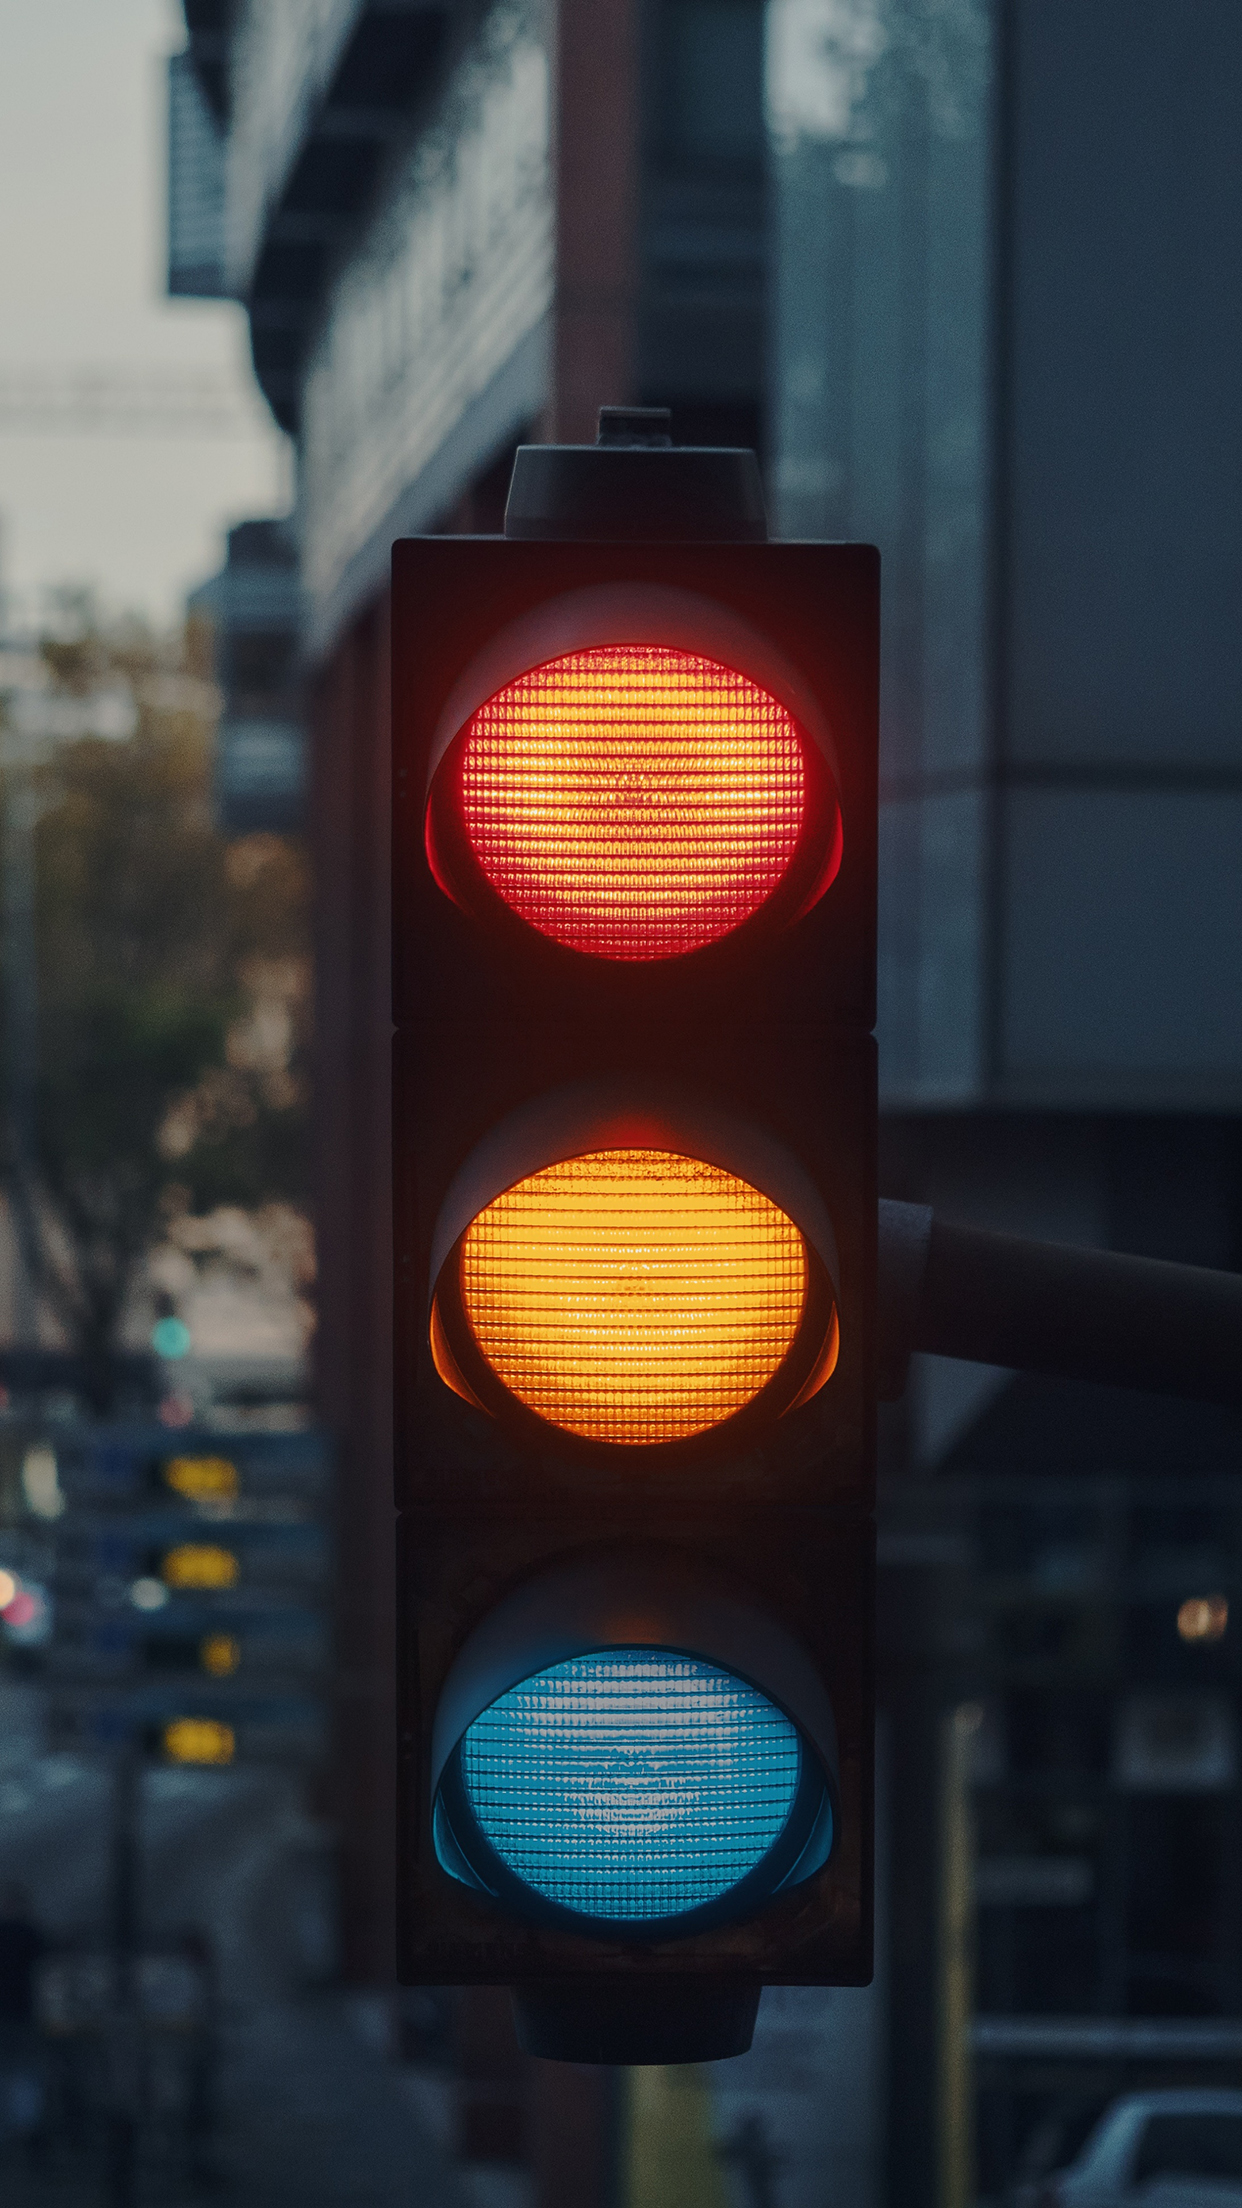 Traffic Light City 3Wallpapers iPhone Parallax Traffic Light : City